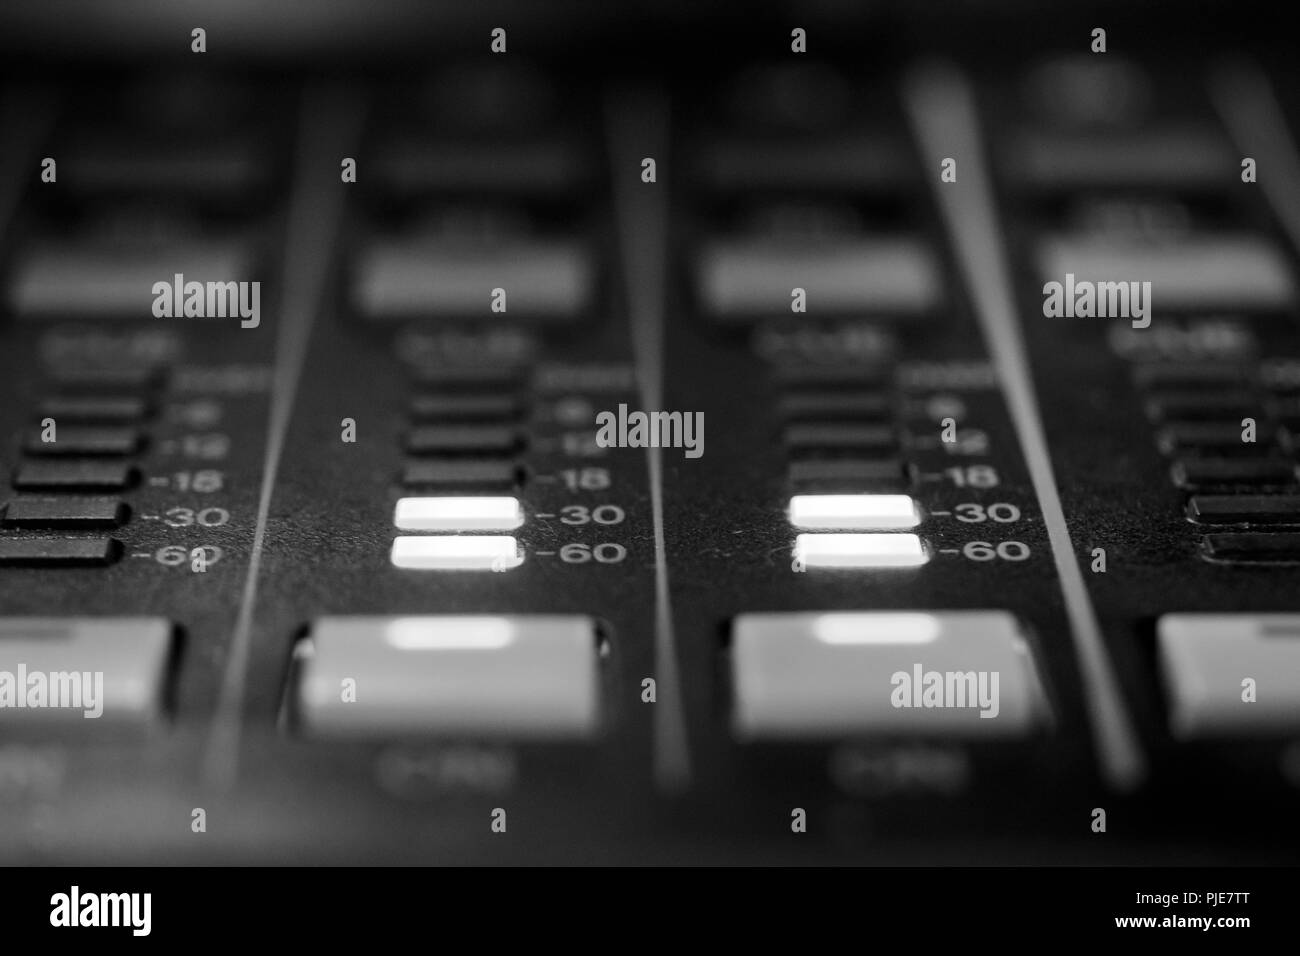 Monochrome LED Meter indicators on Professional Audio Sound Mixing Control Console - Stock Image